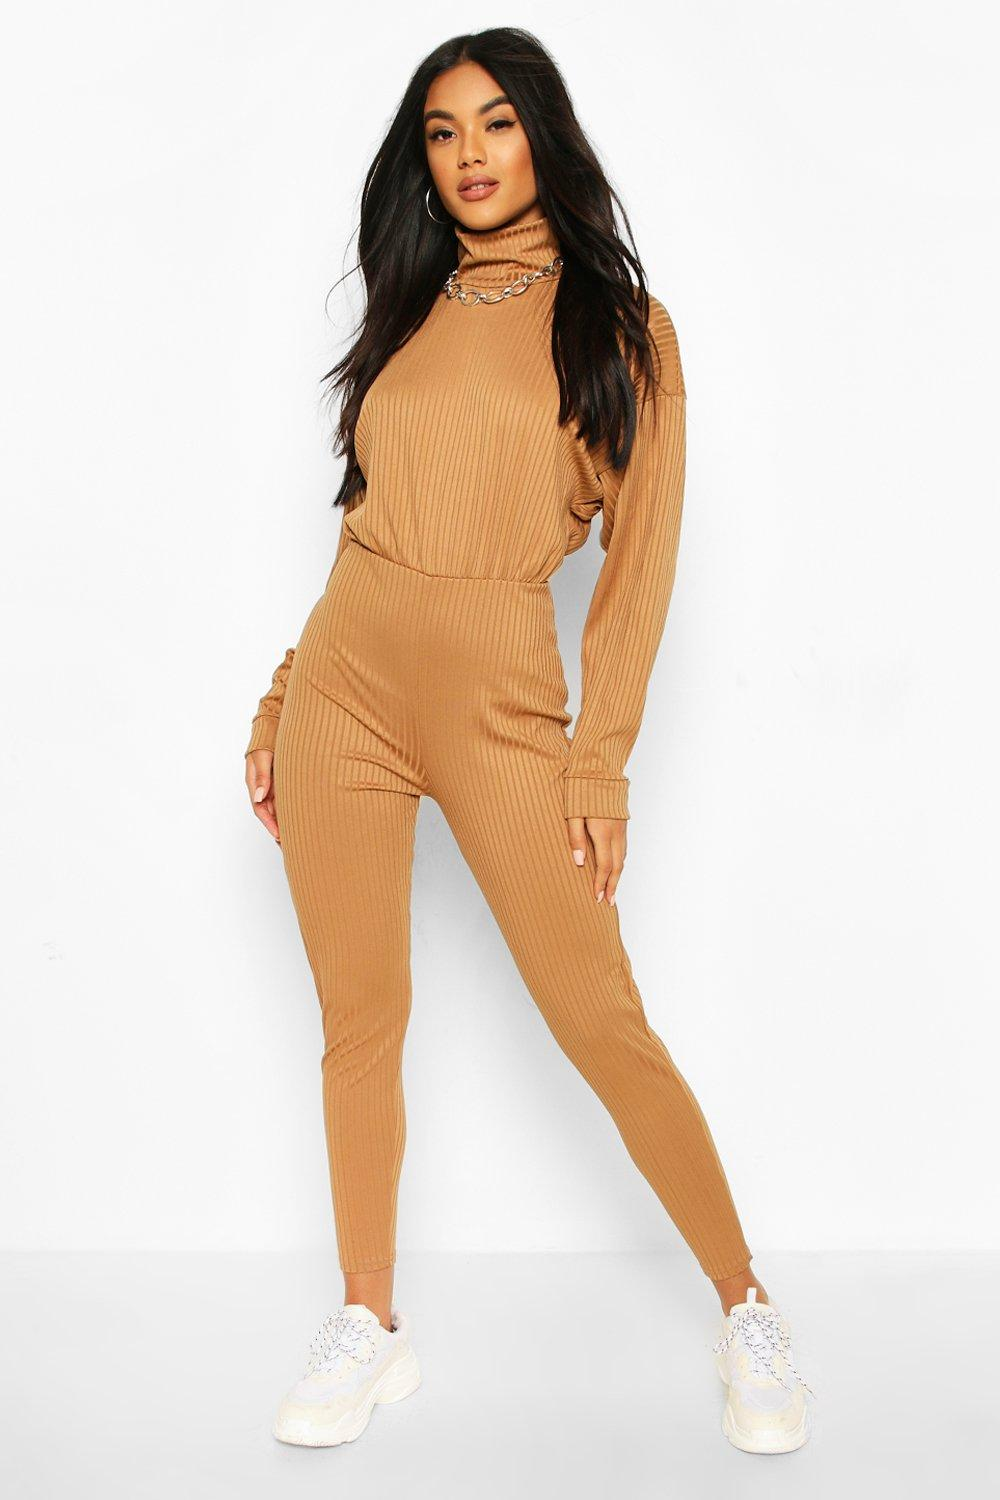 boohoo Womens Jumbo Rib High Neck Jumpsuit - Beige - 14, Beige